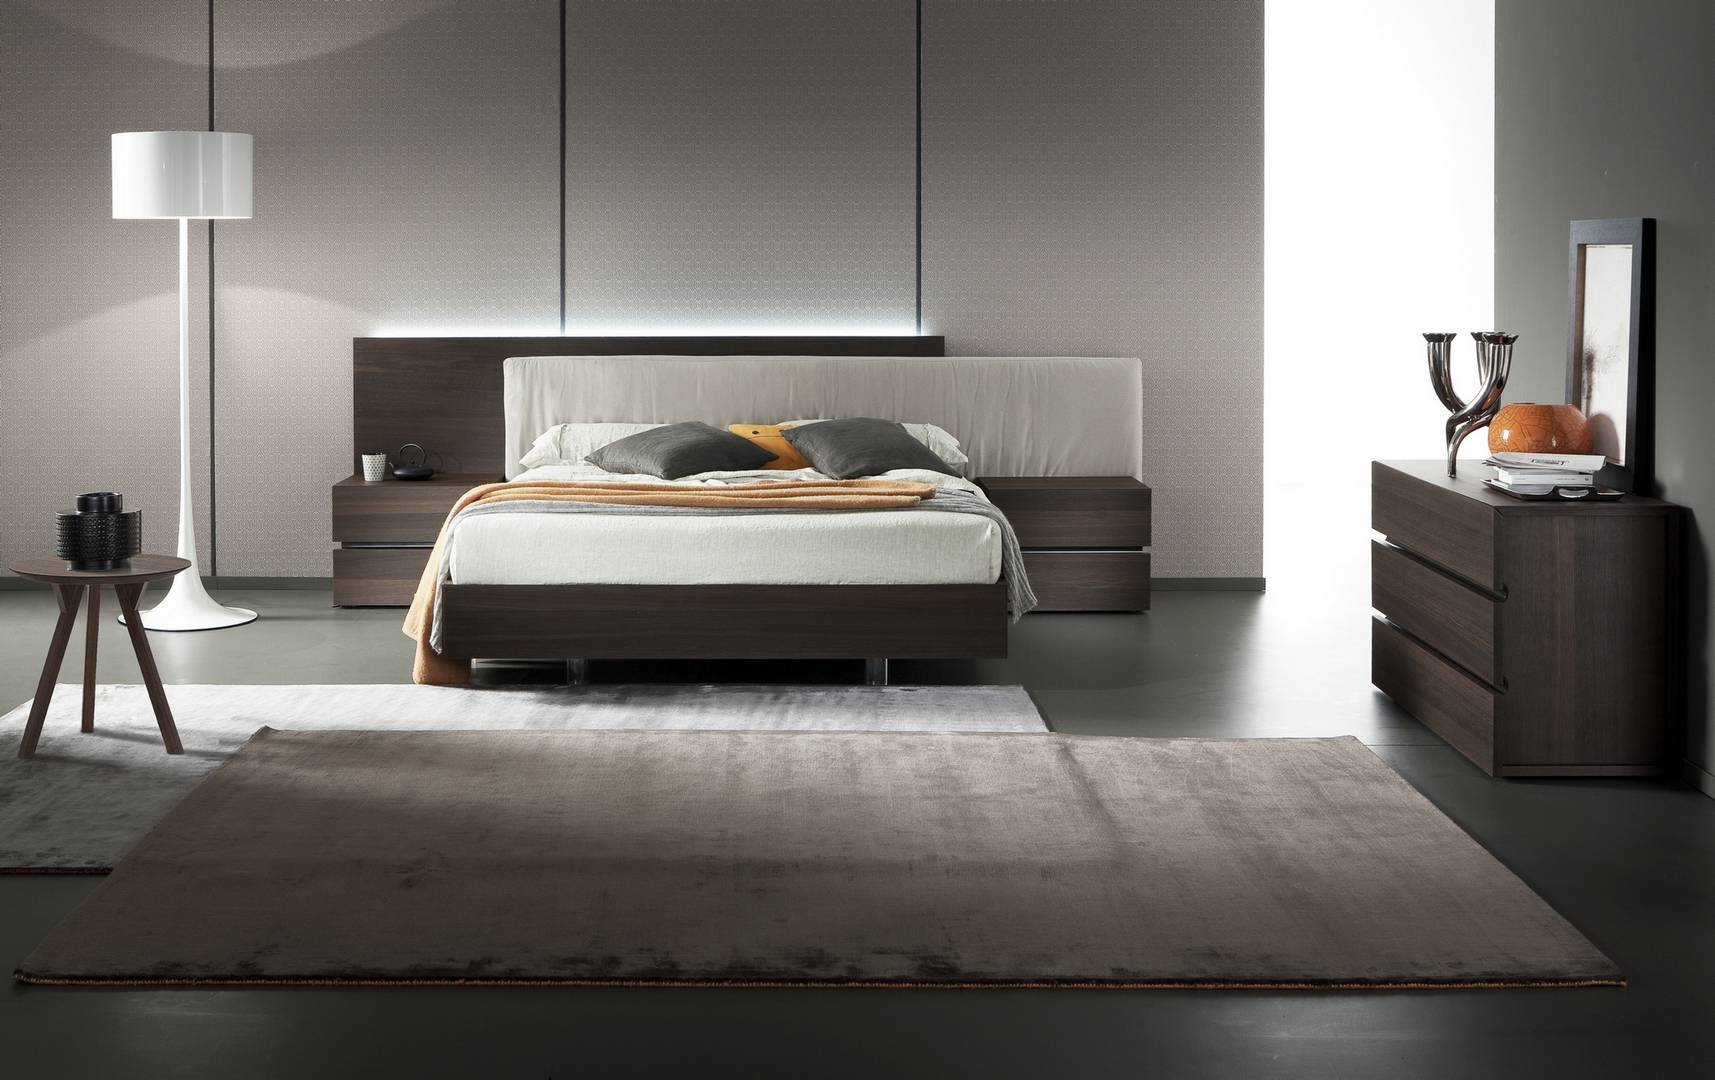 made in italy wood modern contemporary bedroom sets san 12591 | dark brown oak wood italy europe bedgroup suite arros edge